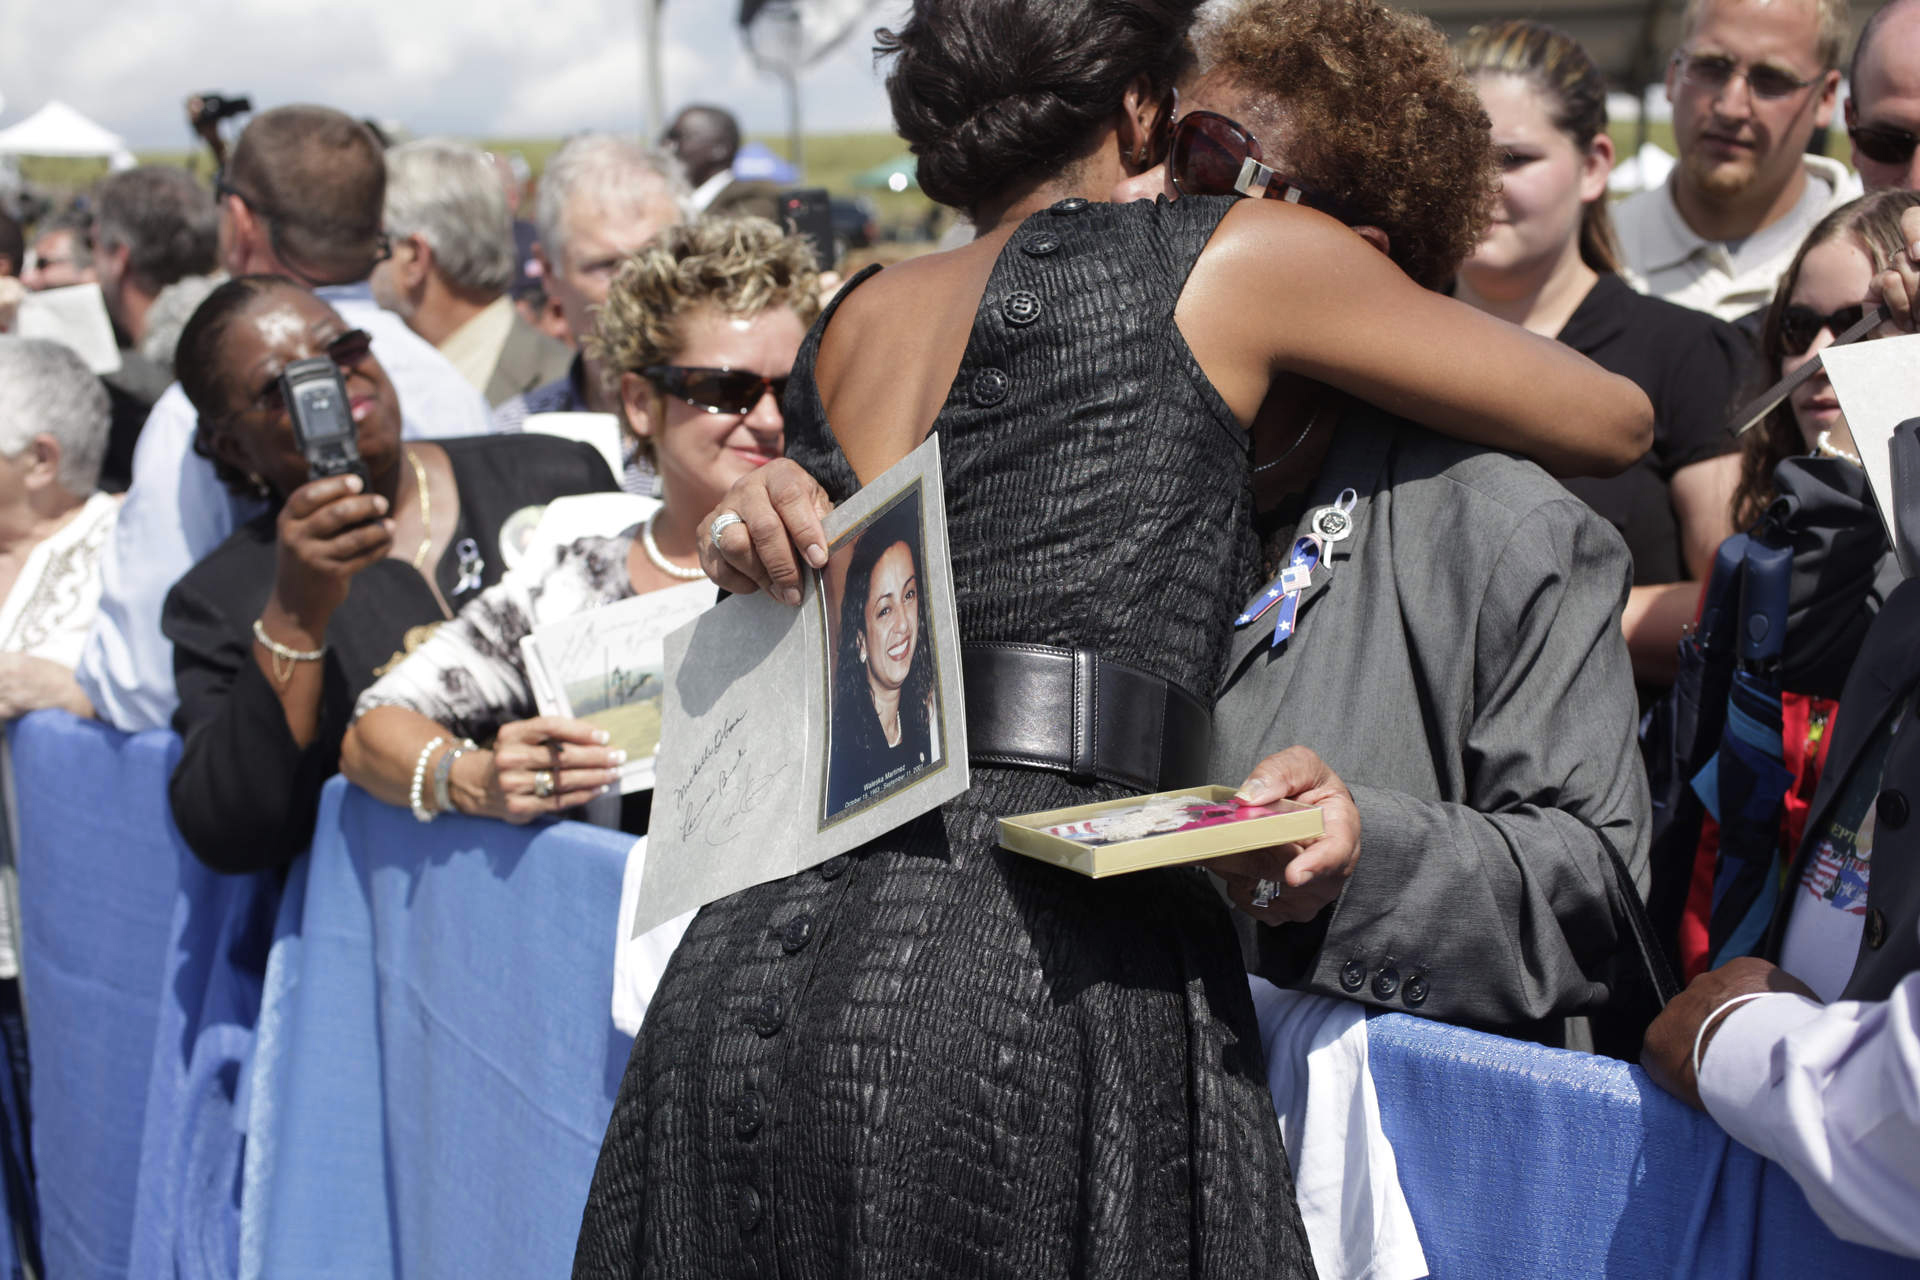 First Lady Michelle Obama hugs a woman at the 9/11 memorial in Shanksville PA